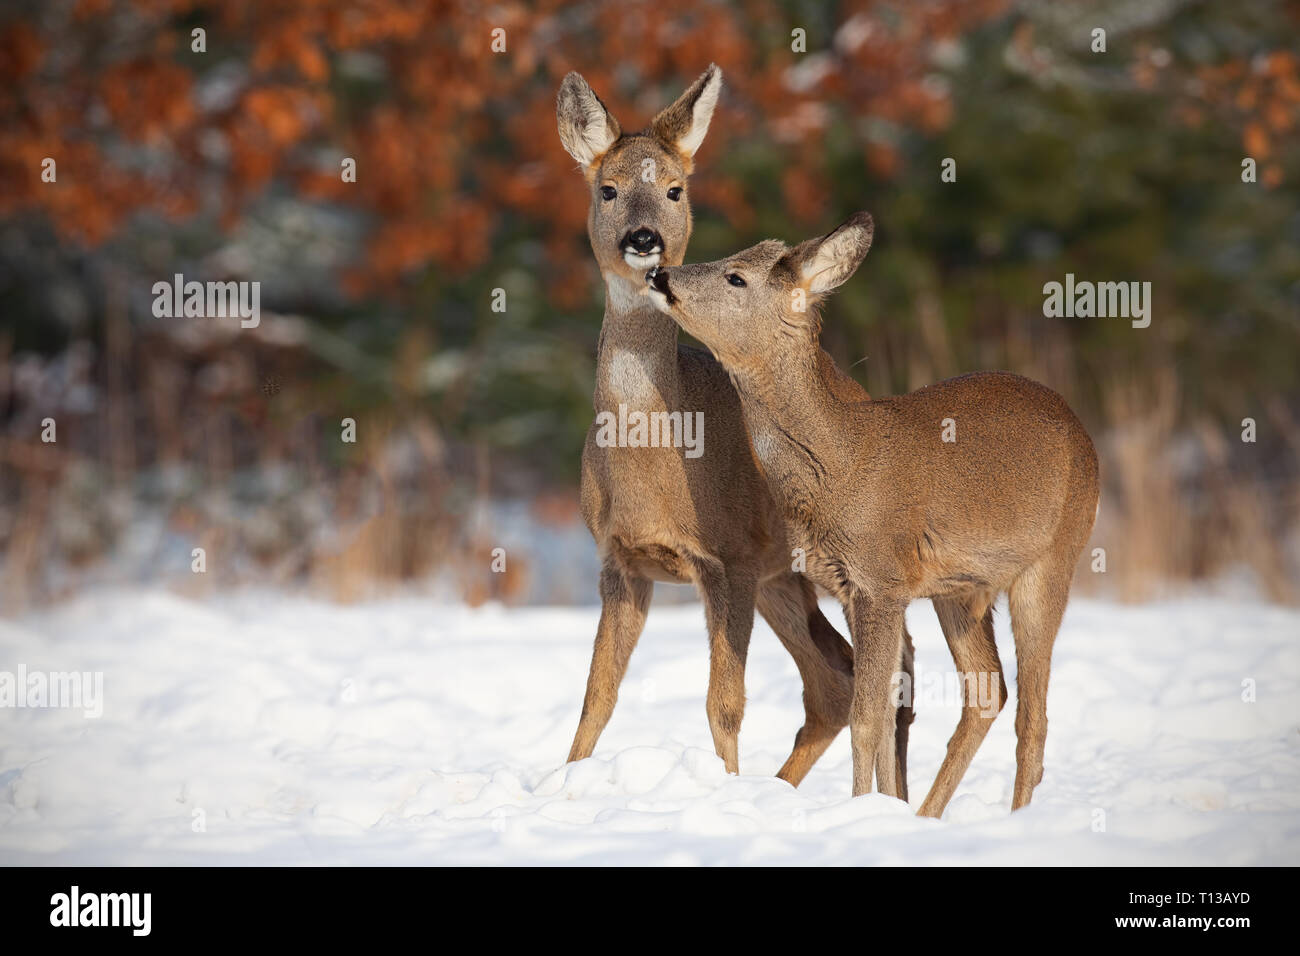 Mother and son roe deer, capreolus capreolus, in deep snow in winter kissing. - Stock Image